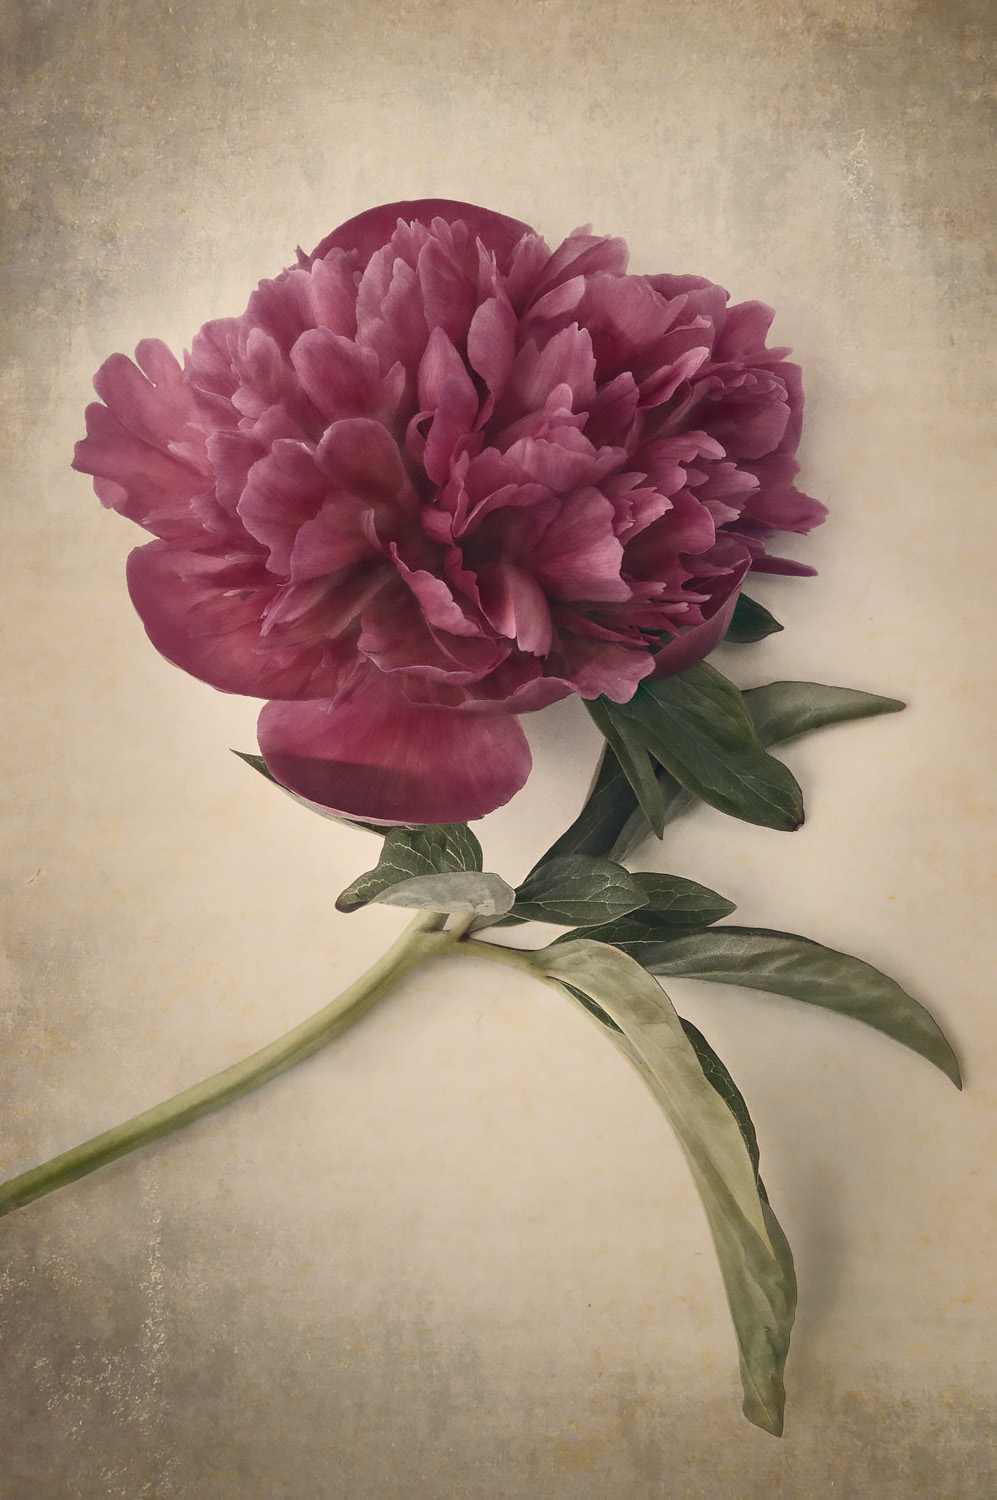 Scents of Spring - Antique Peonies - Burgundy